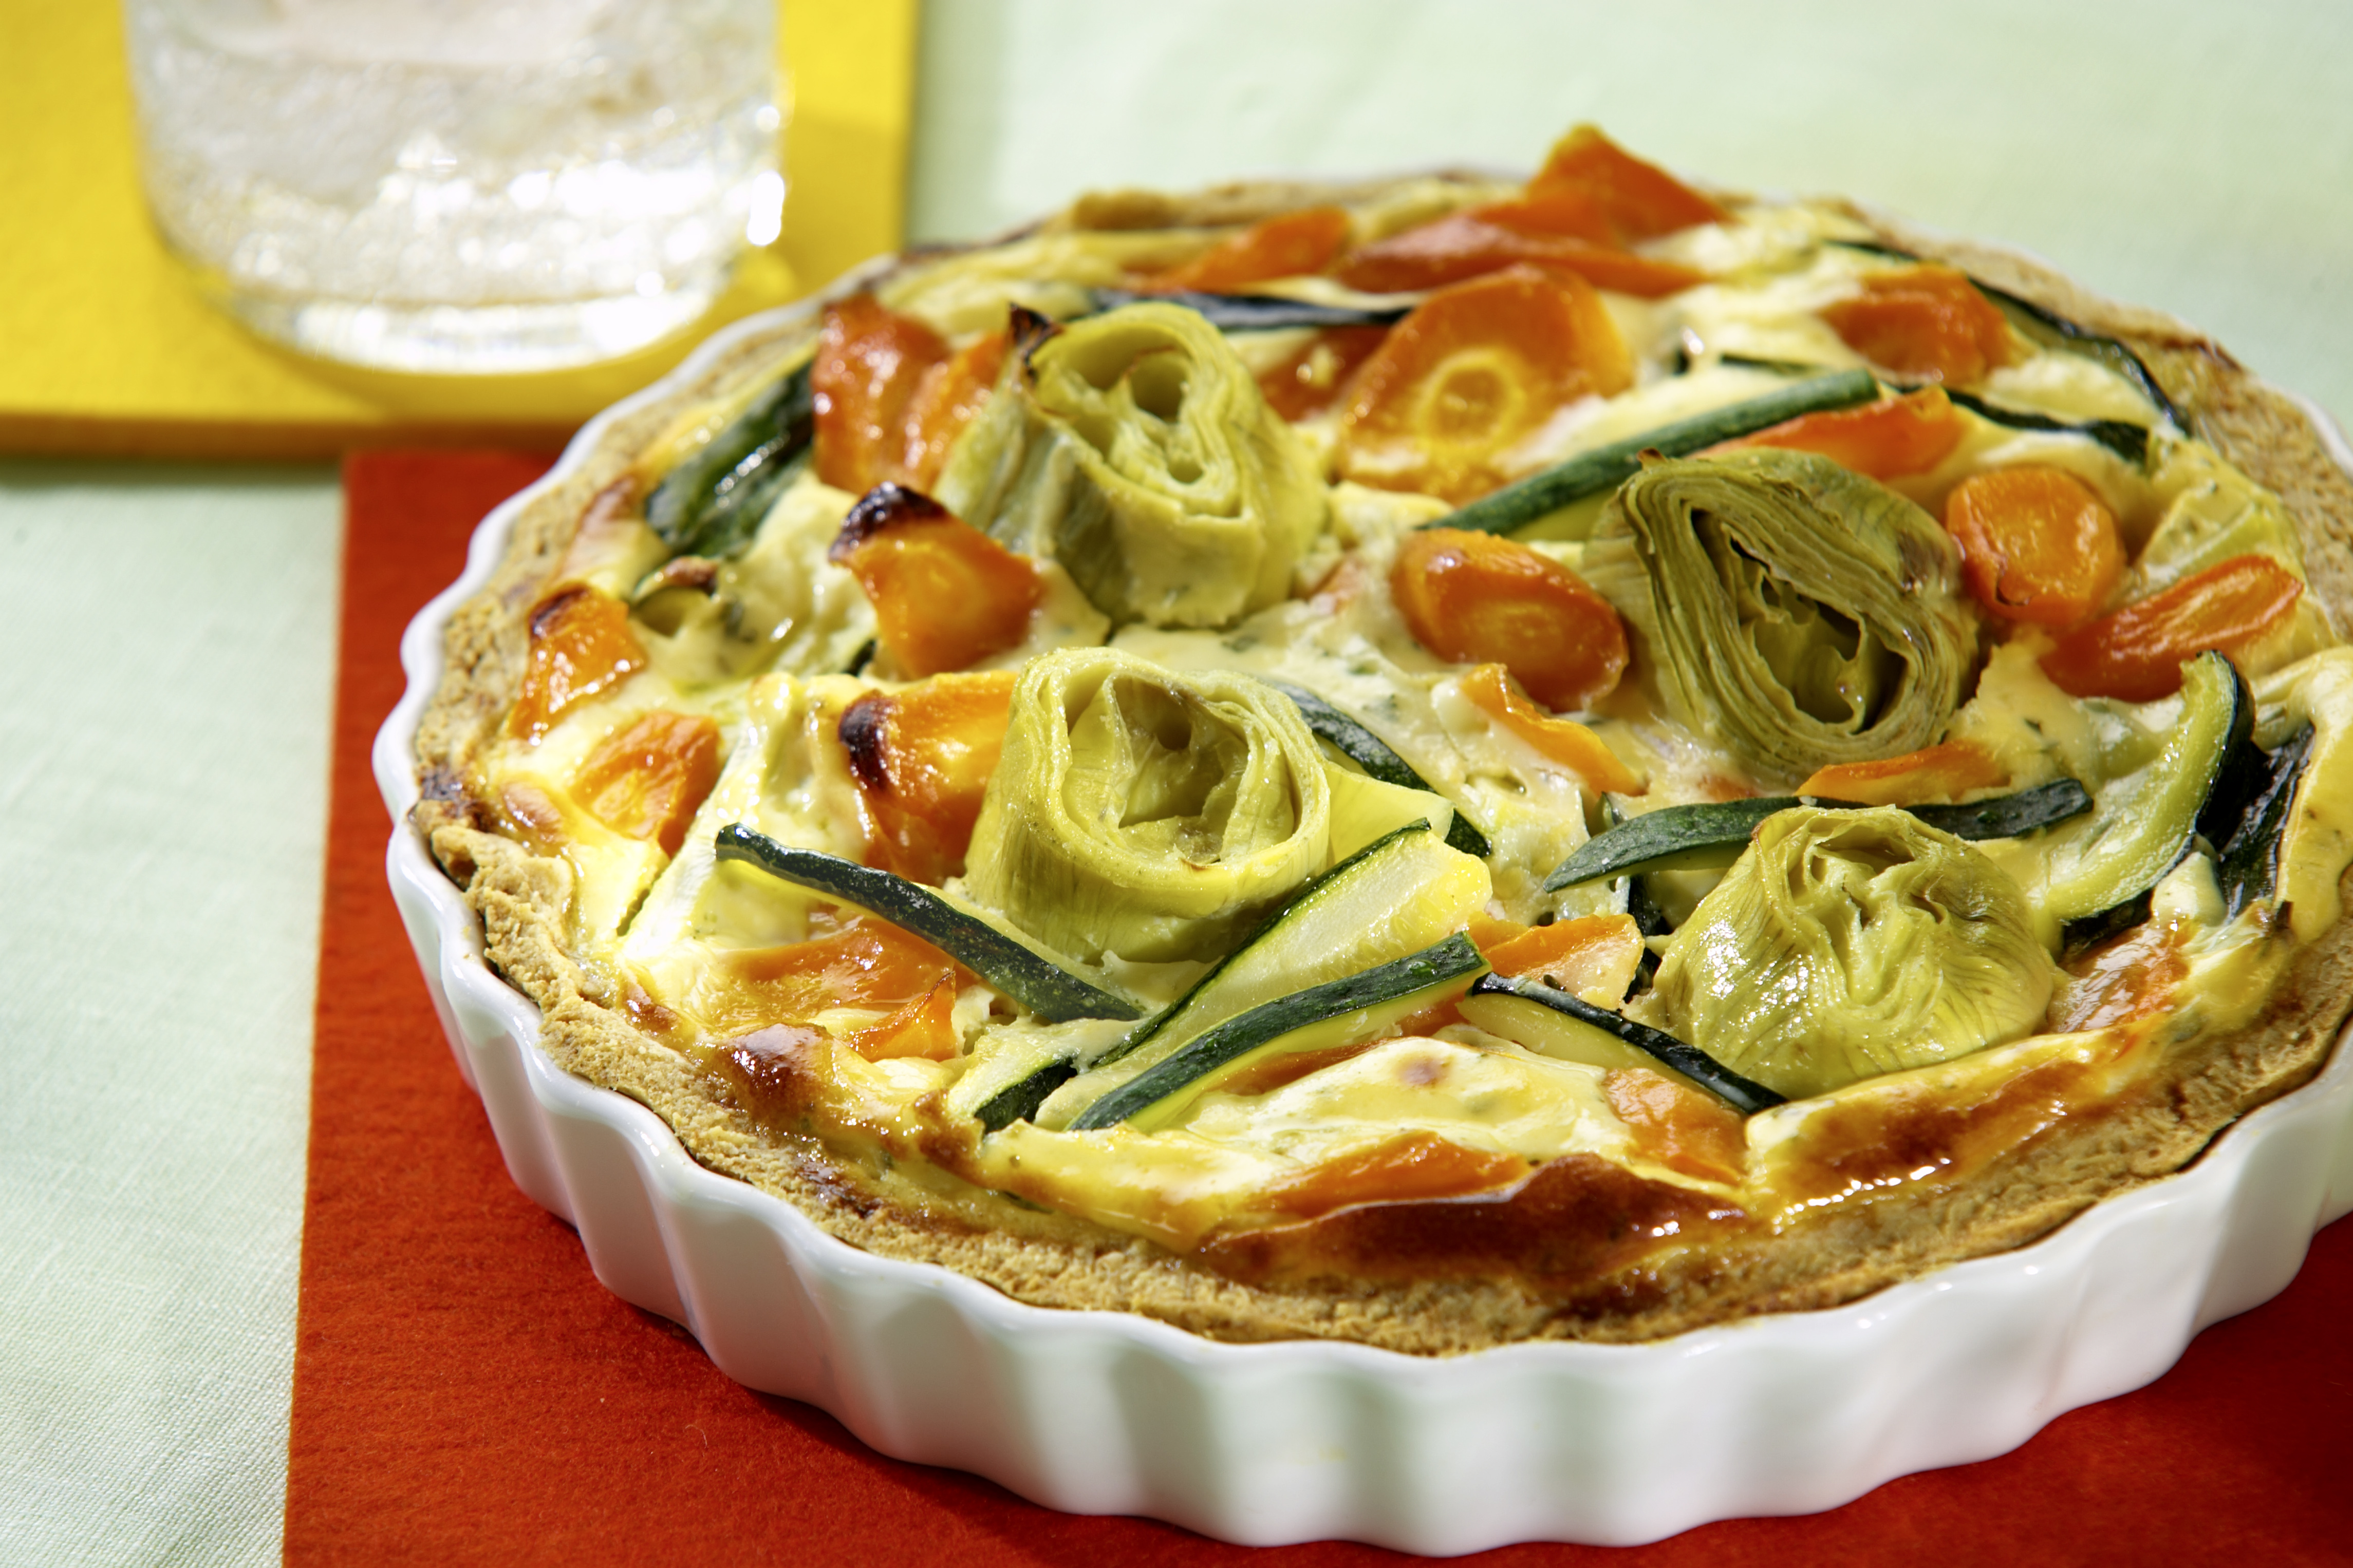 recipe image Artischocken-Quiche